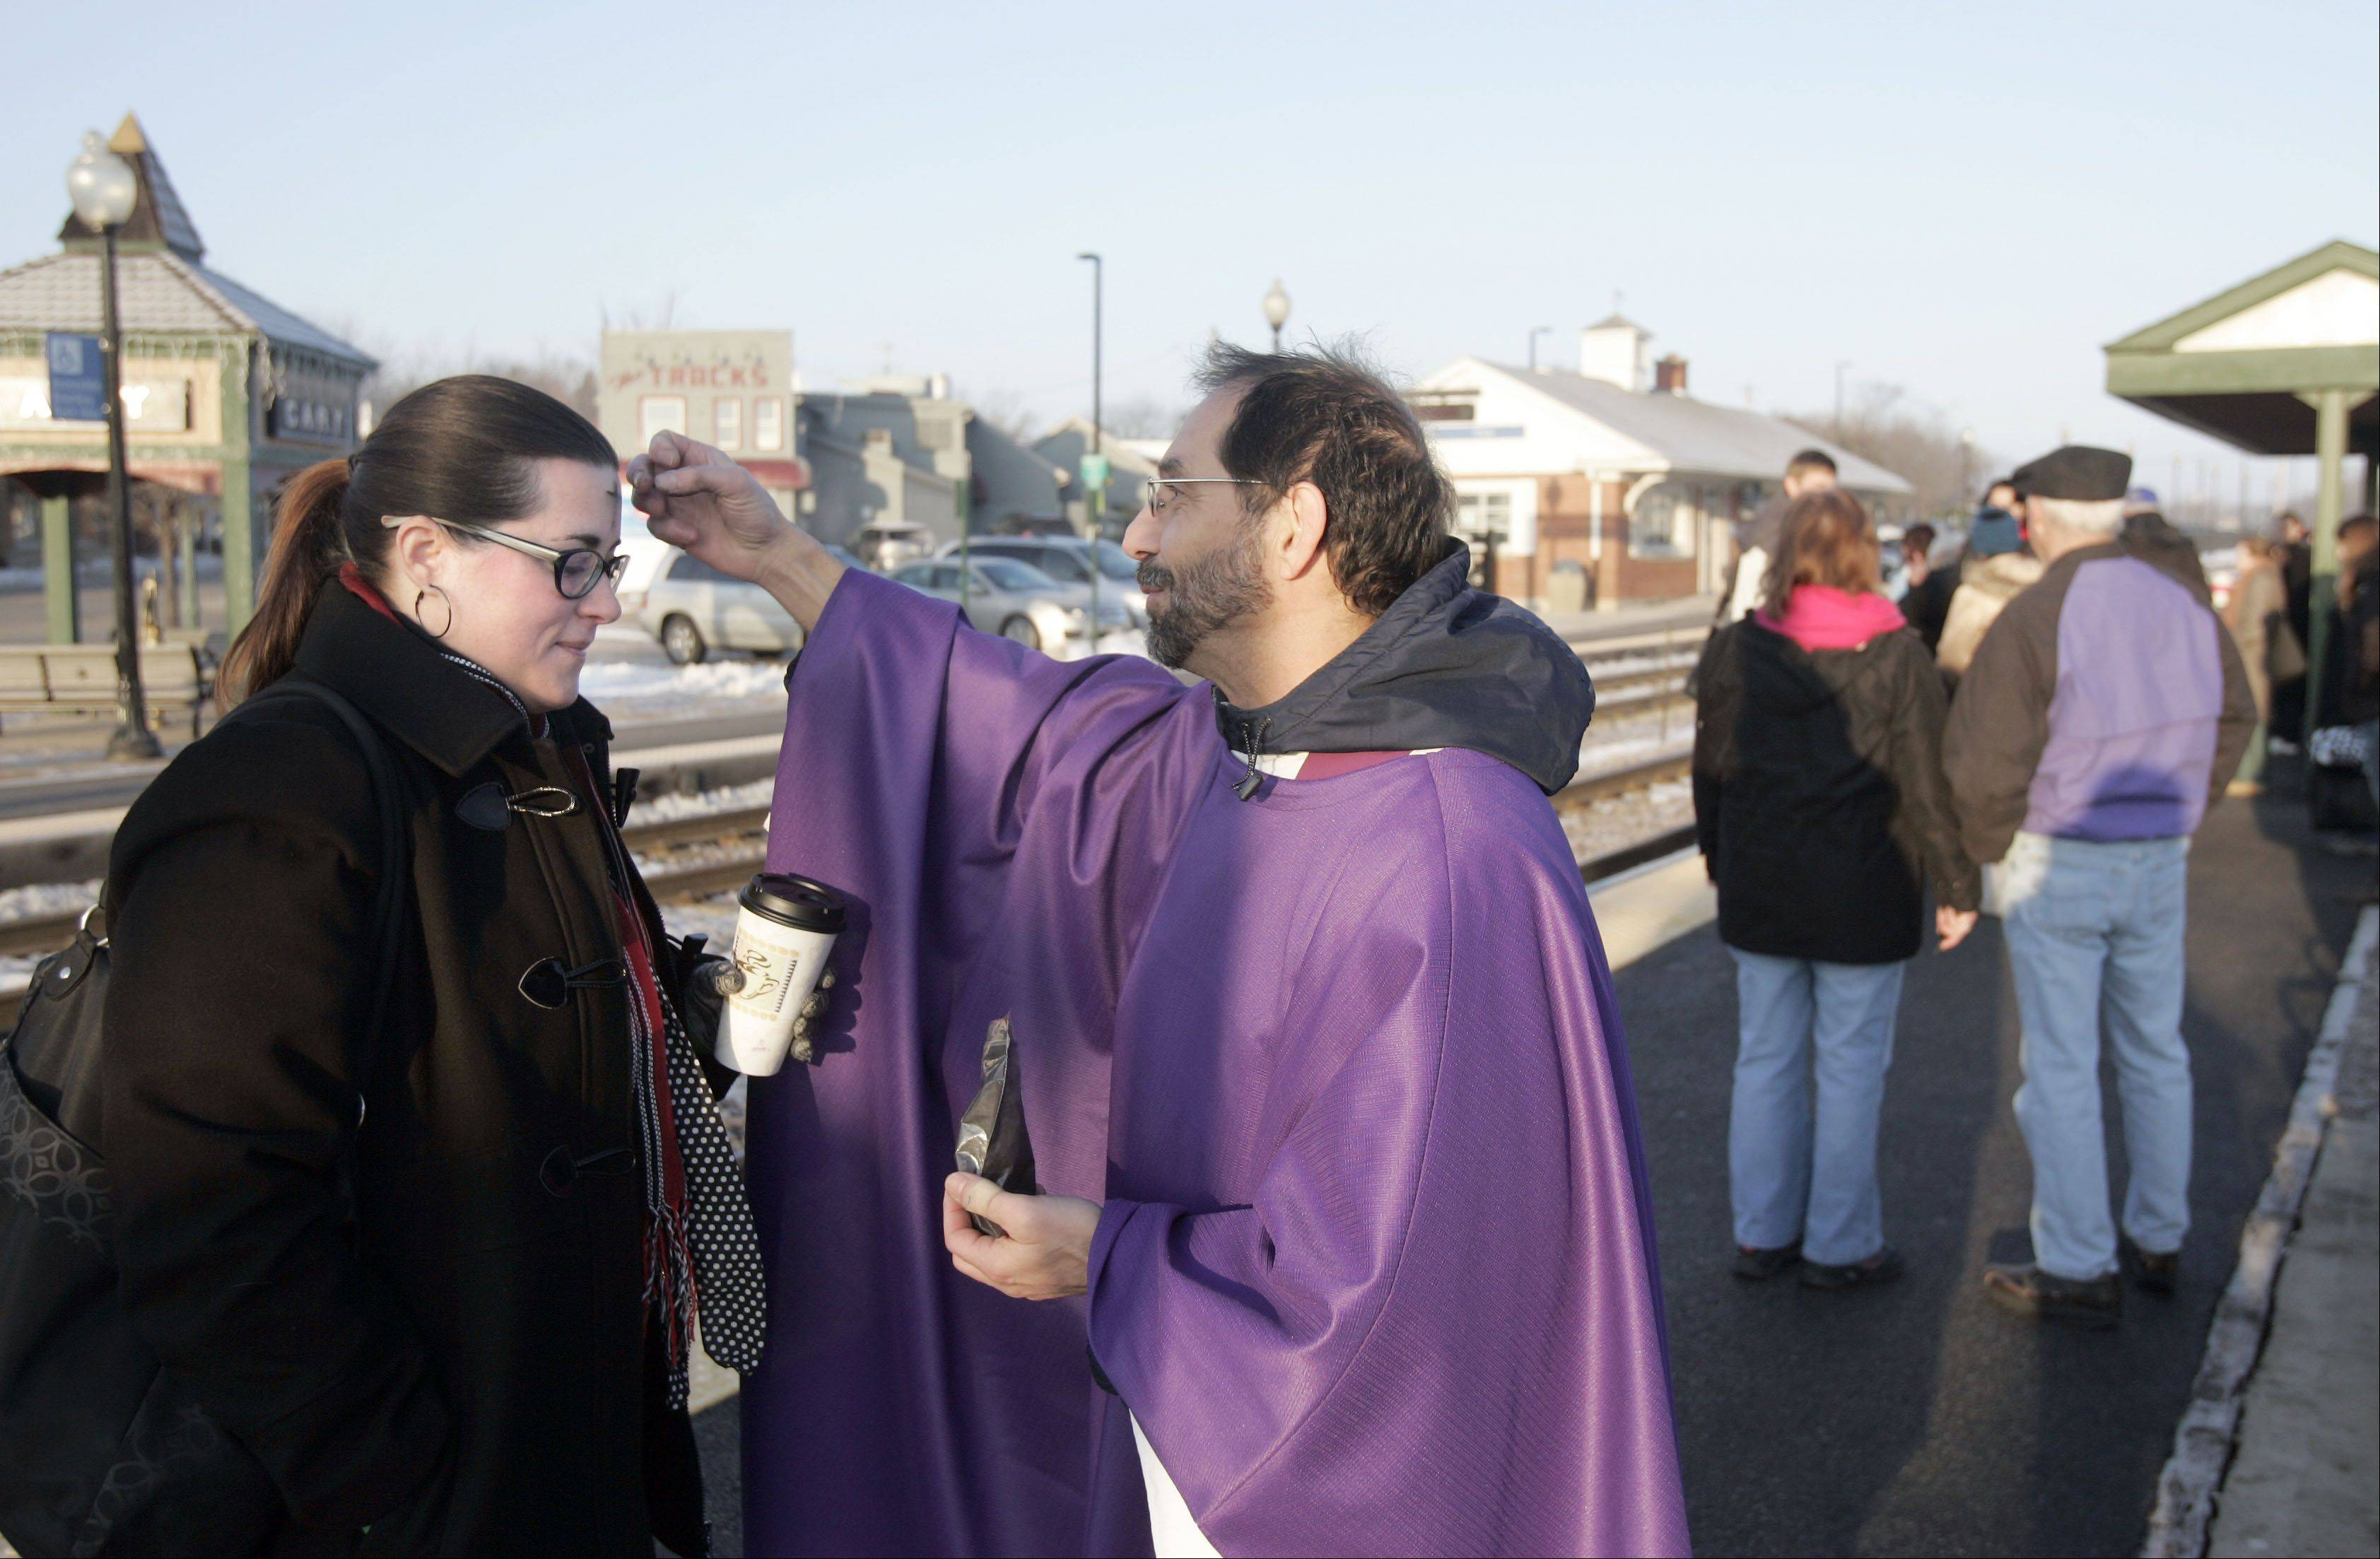 Father Manny Borg of St. Nicholas Episcopal Church in Elk Grove Village disperses ashes to Kelly McGuigan of Lake in the Hills as she starts her commute at the Cary Metra Station Wednesday February 13, 2013.